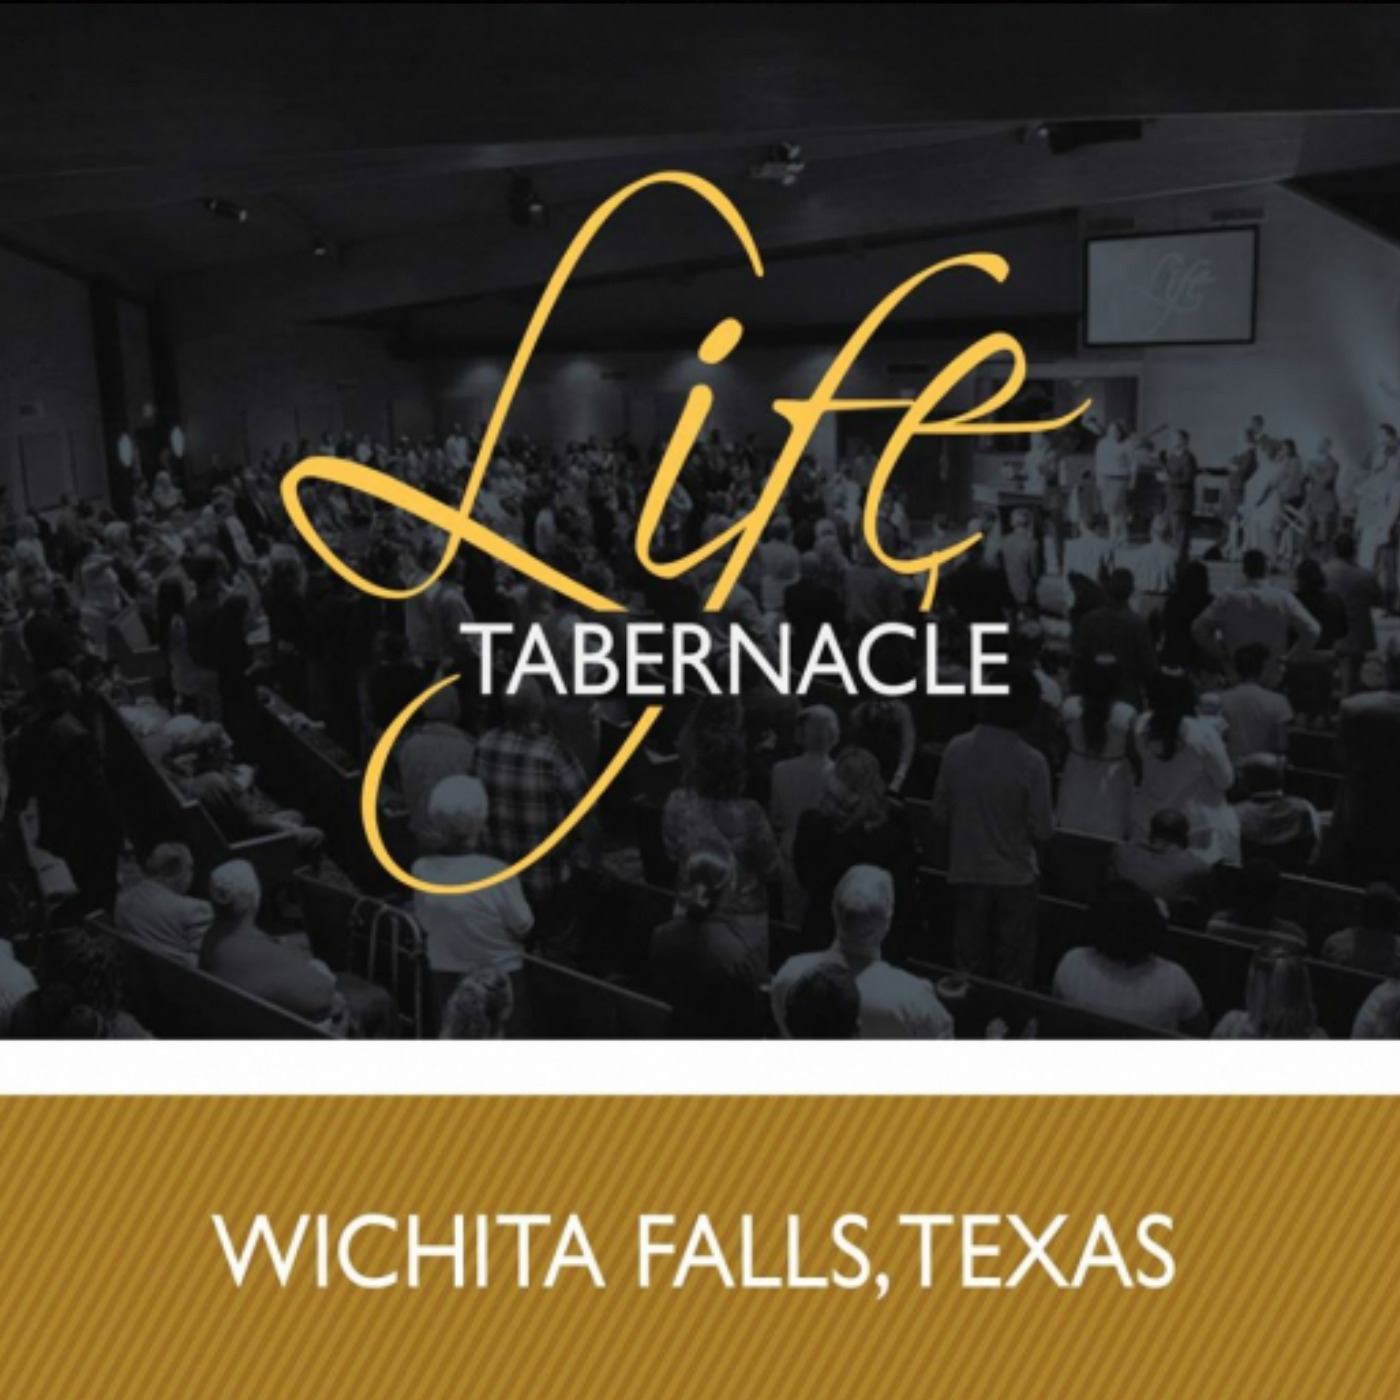 Life Tabernacle • Wichita Falls, Texas